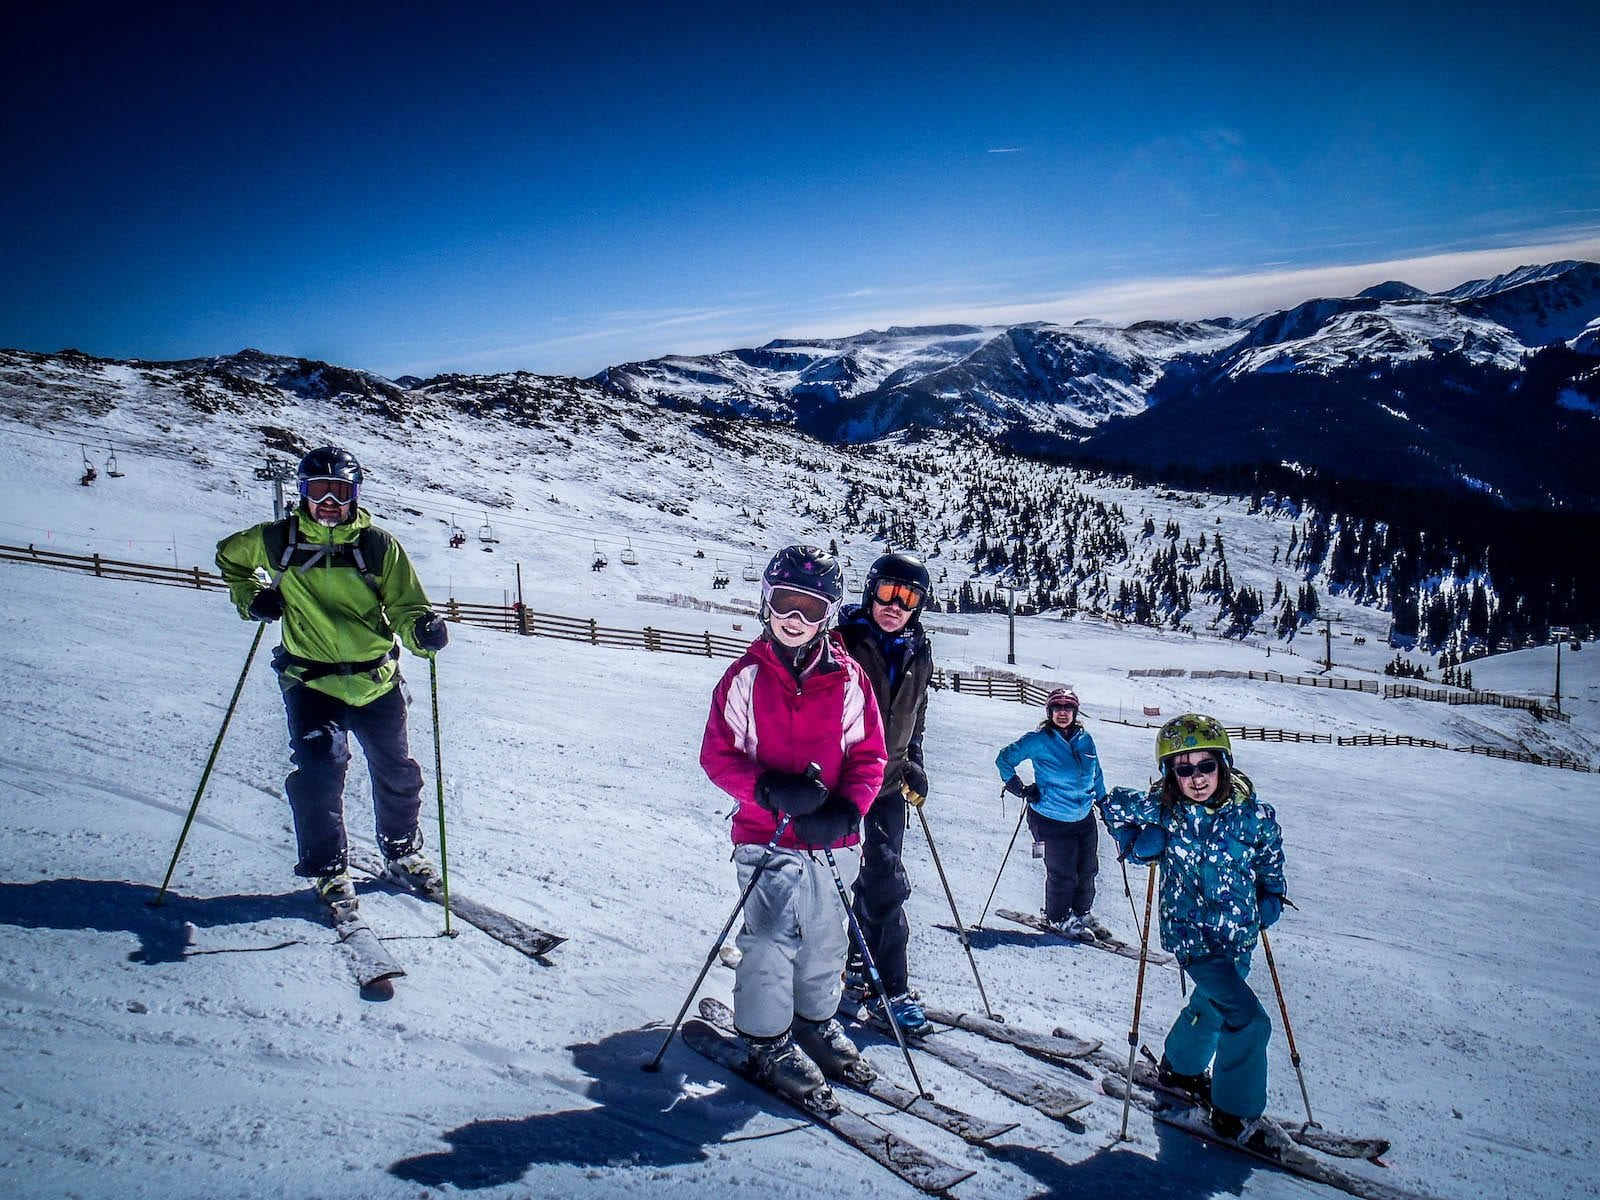 Skiing at A-Basin with the Coopers, Colorado